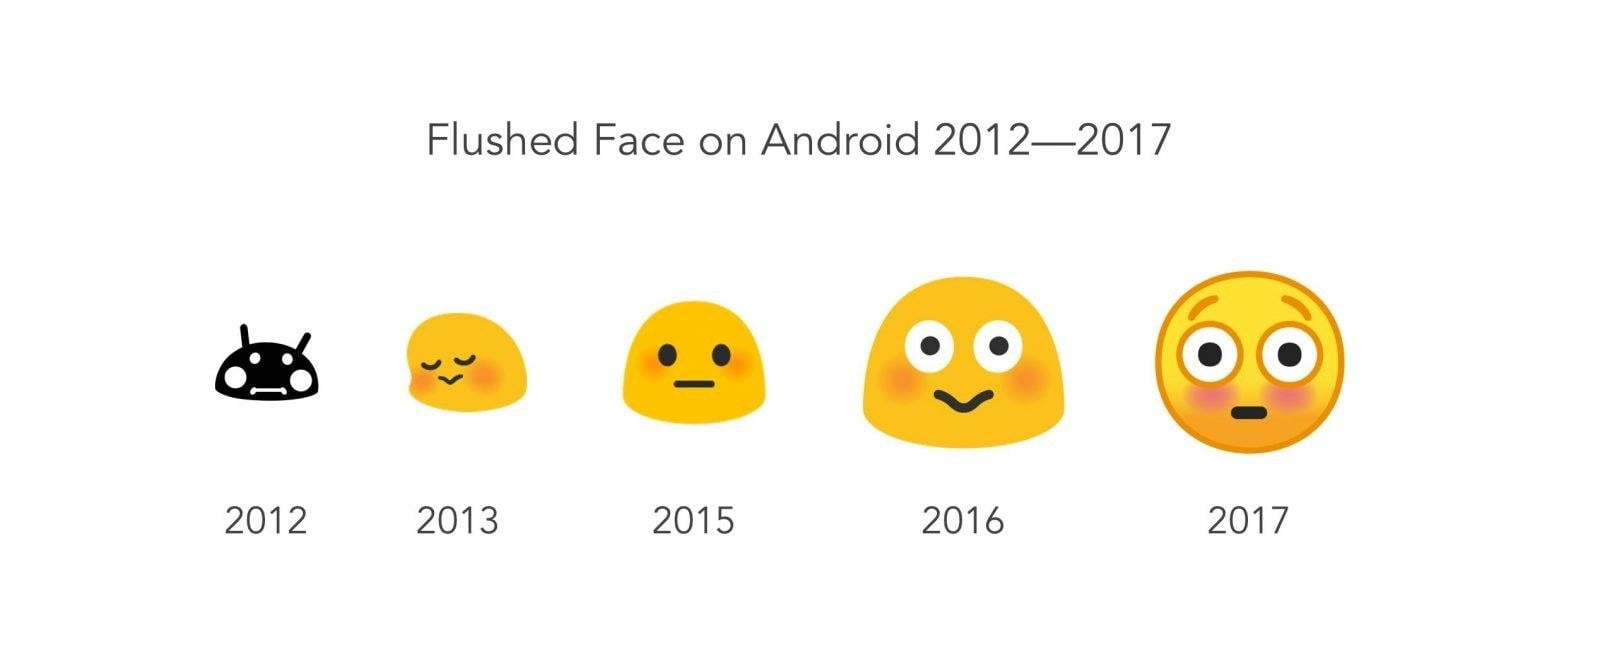 android-flushed-face-icon